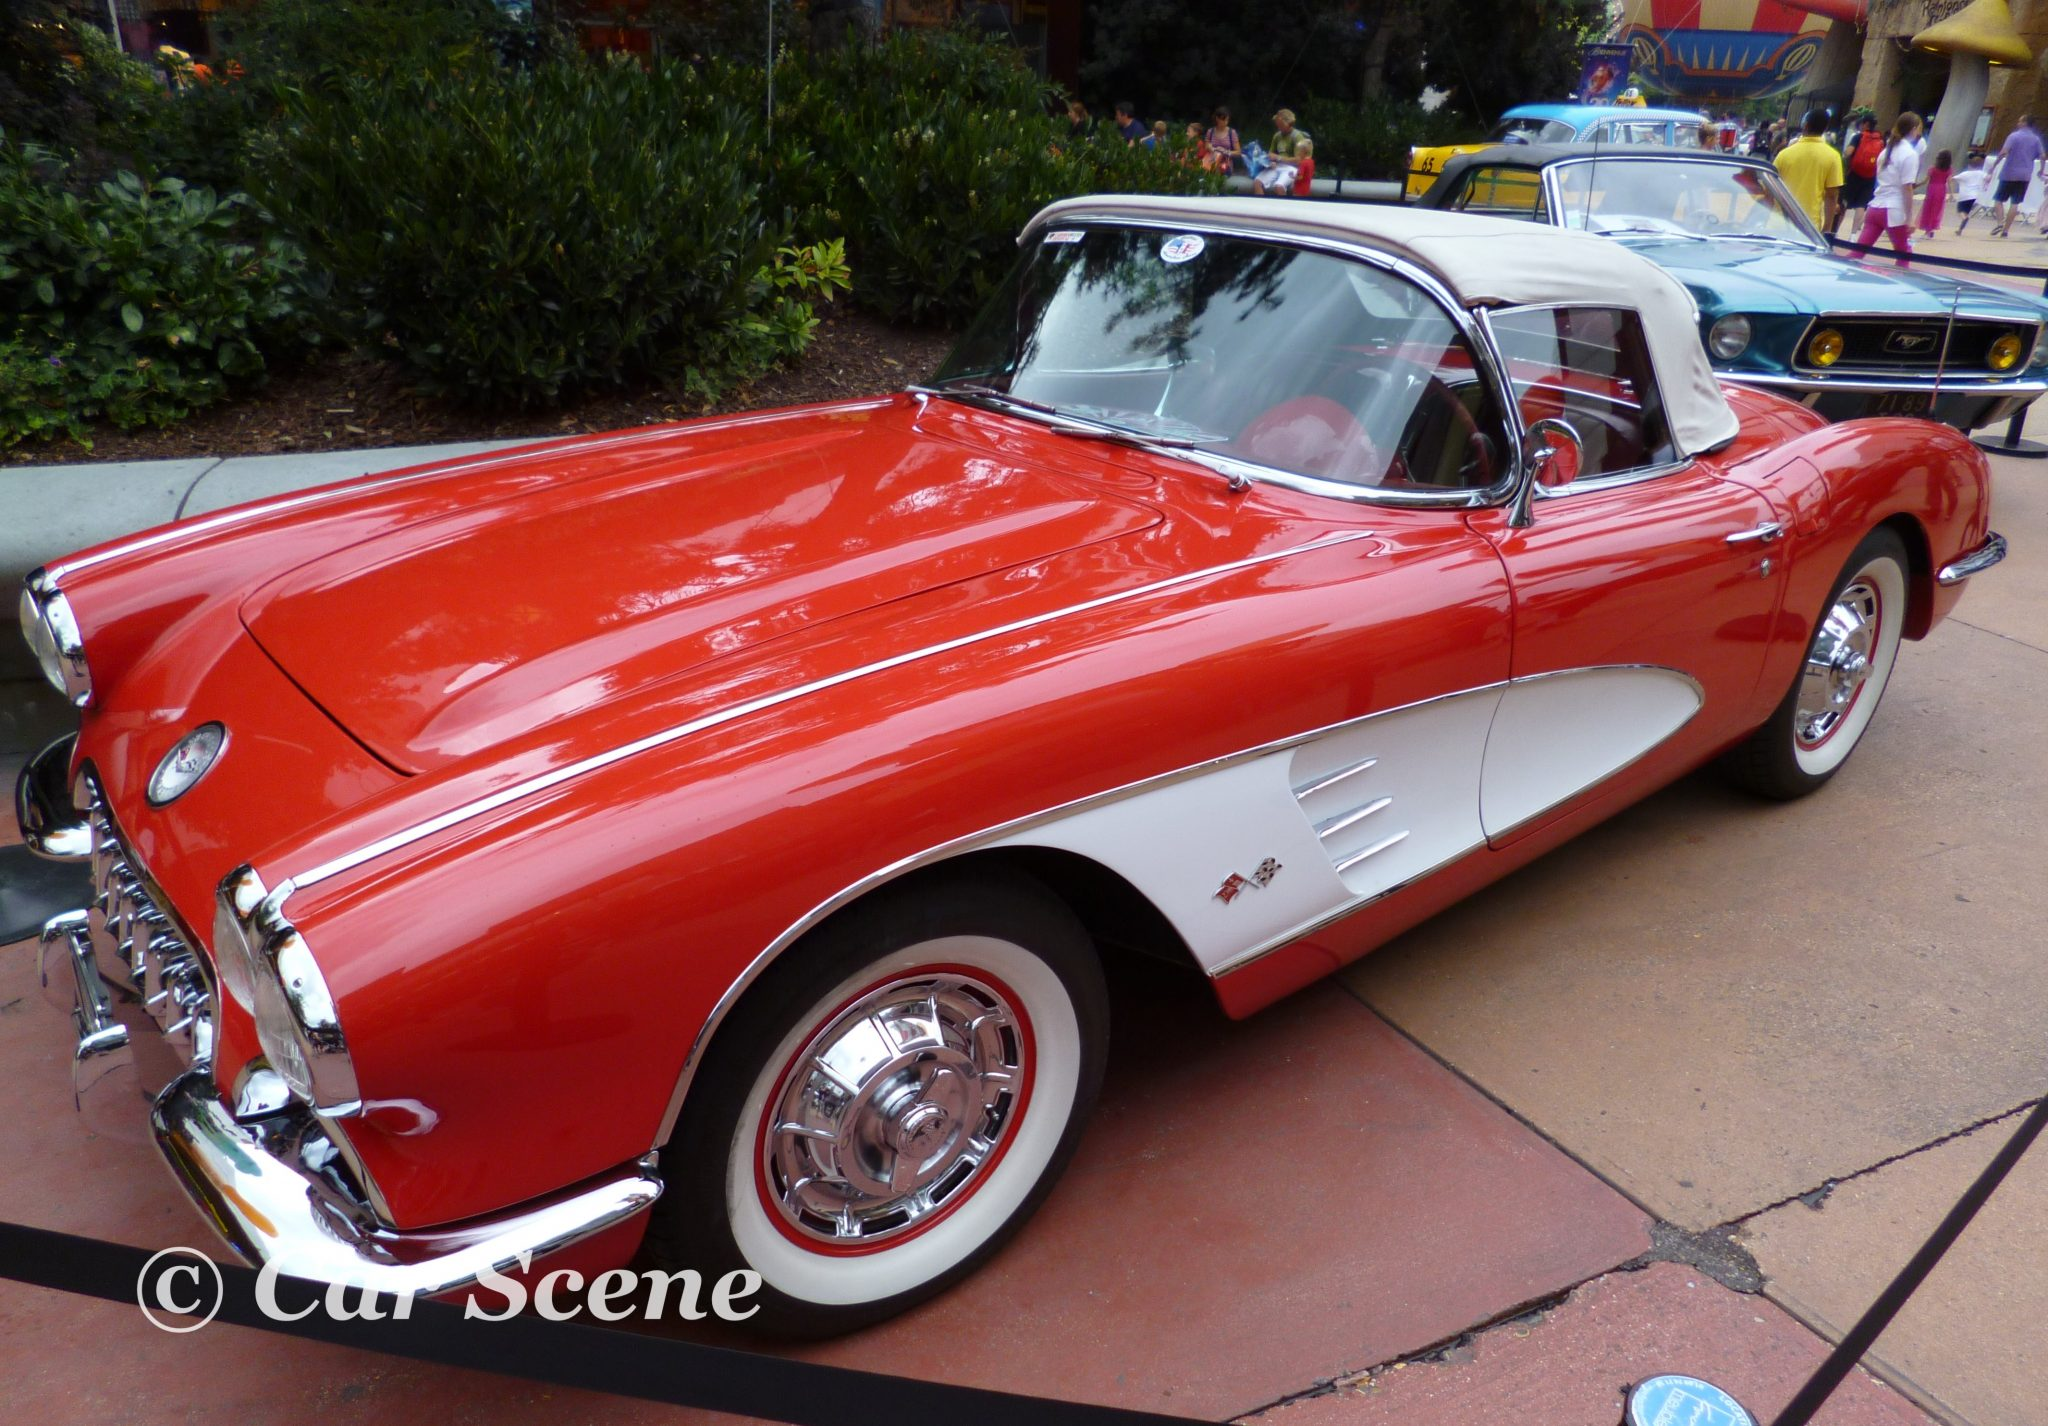 1959 Chevrolet Corvette side view